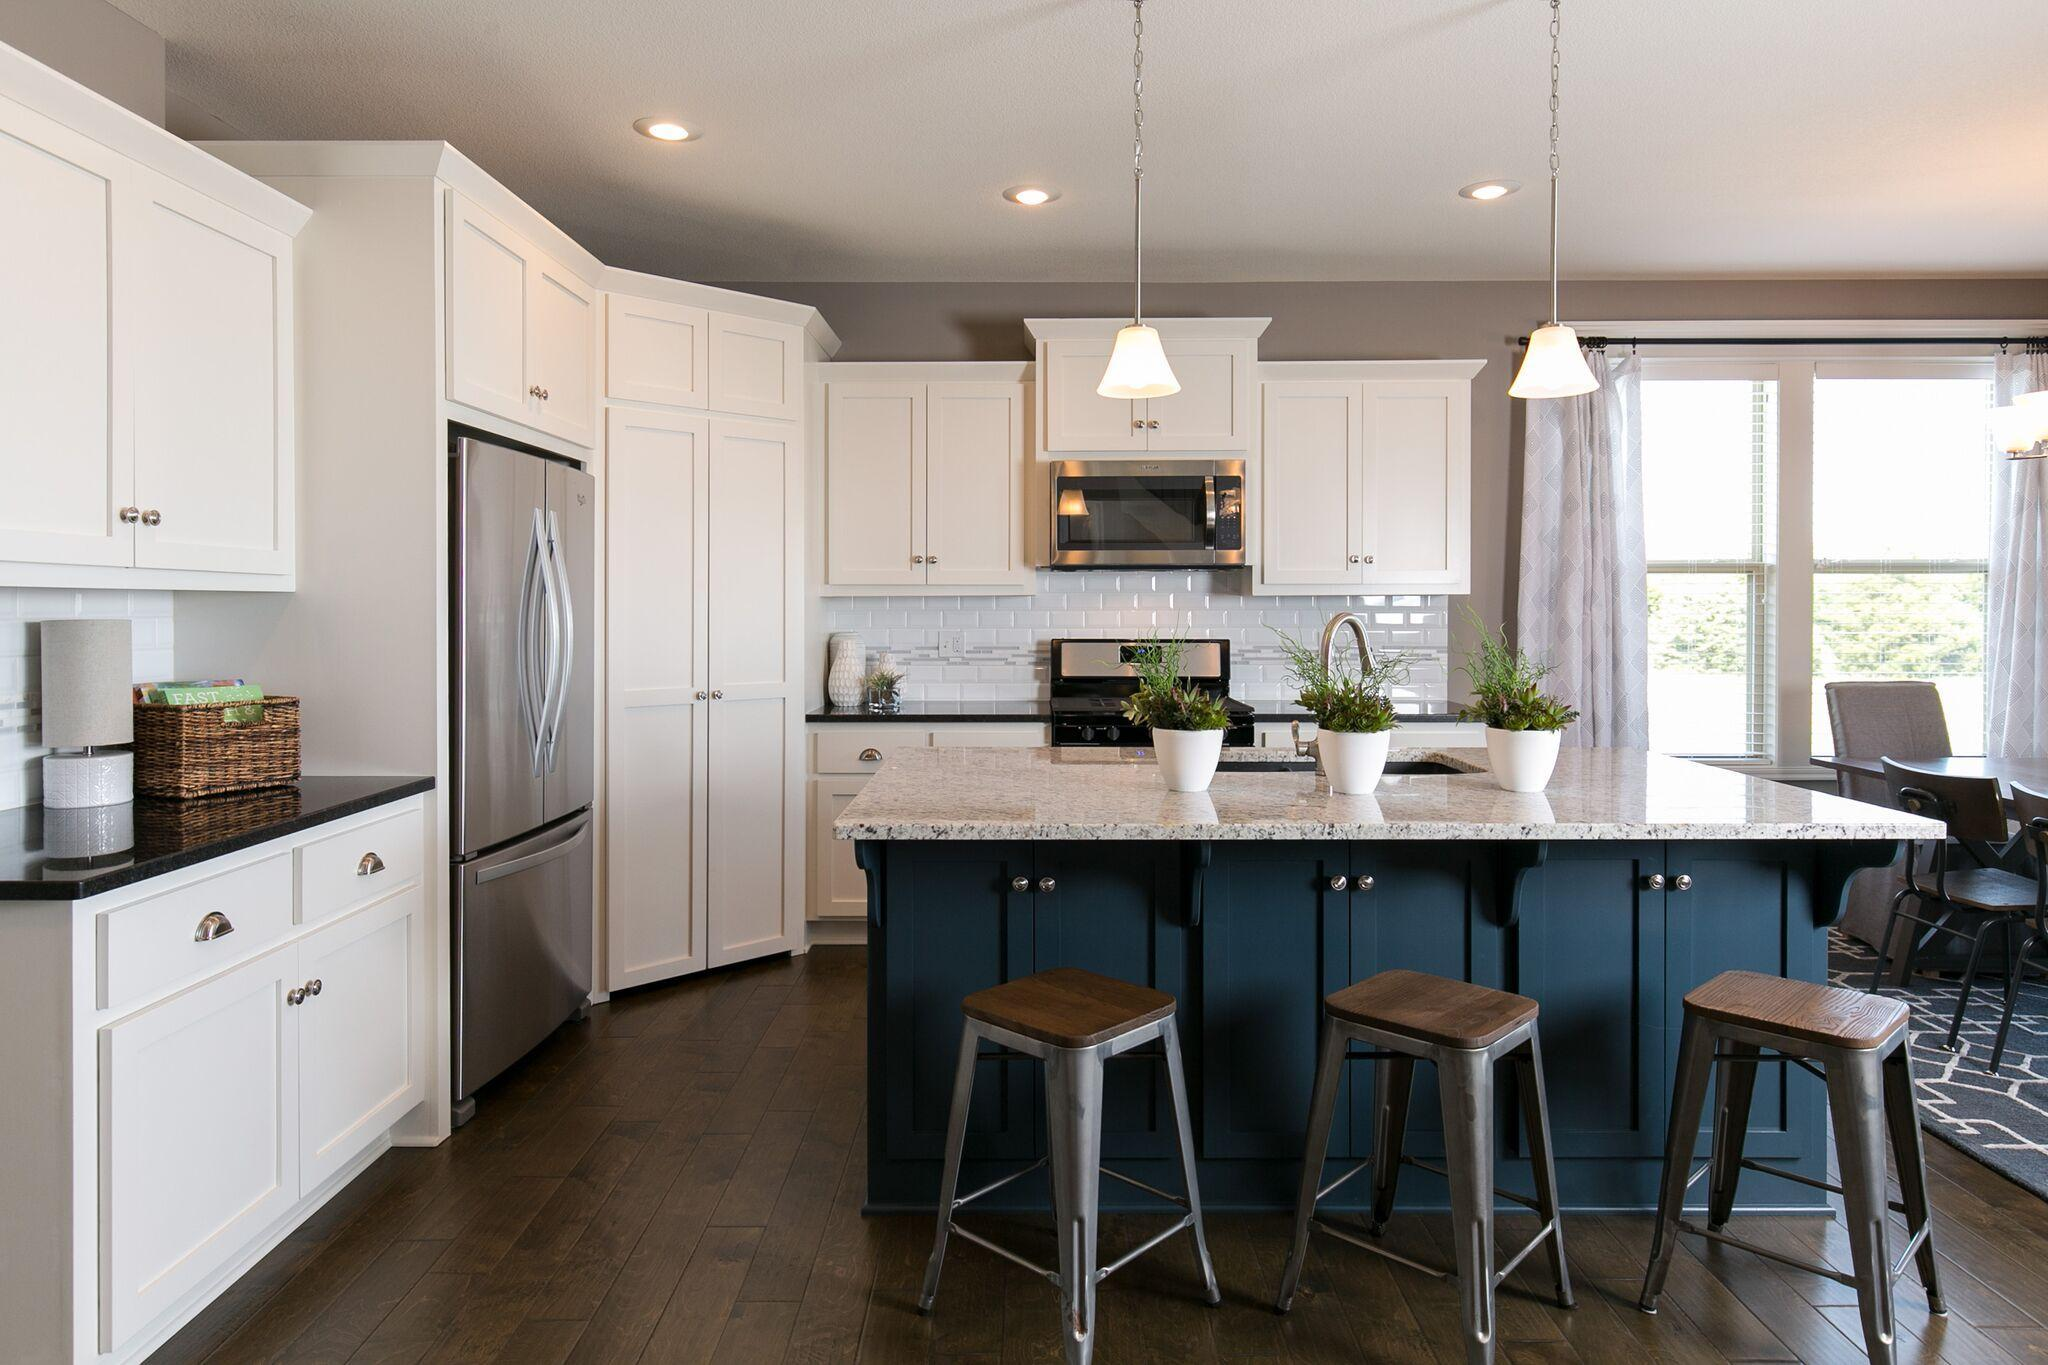 Kitchen featured in the Bayfield By Summit Homes in Kansas City, MO